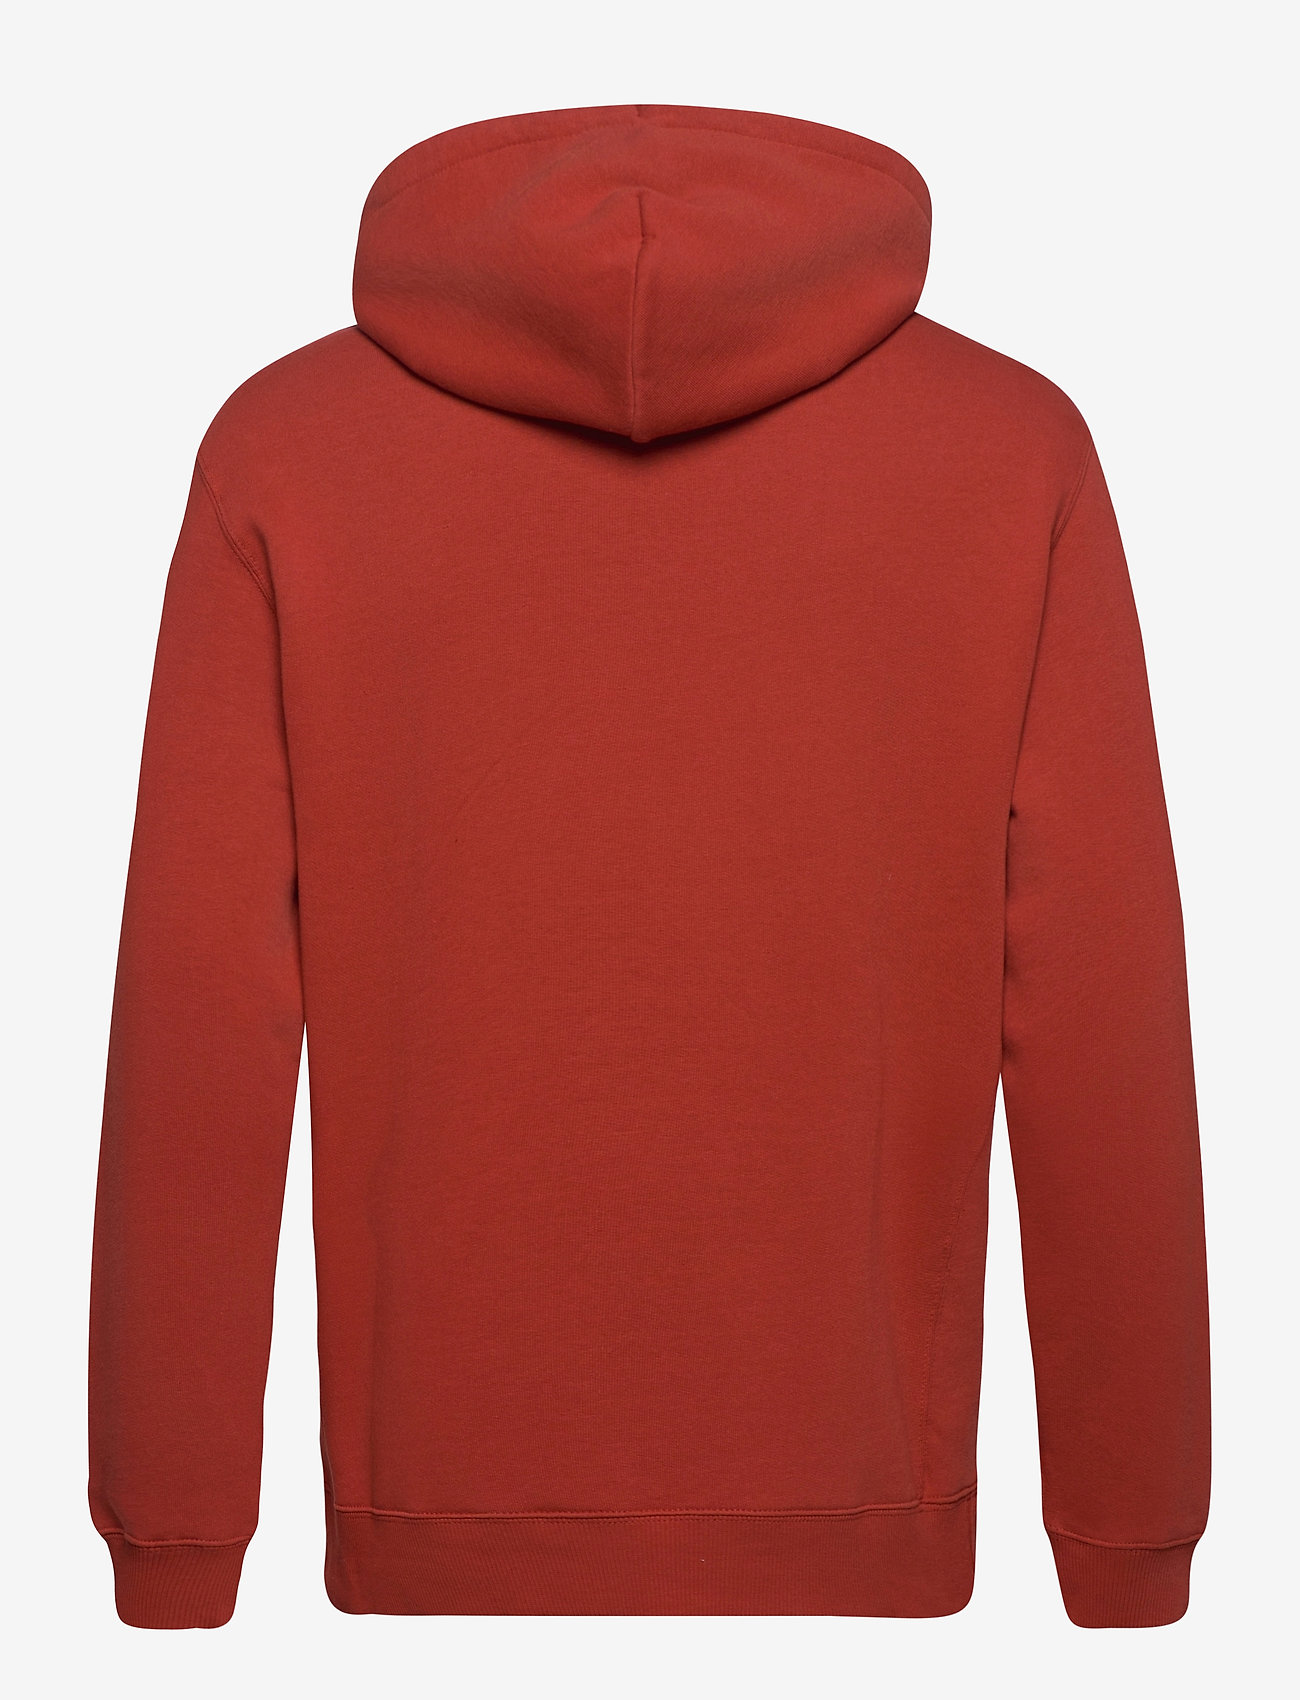 Lee Jeans PLAIN HOODIE - Sweatshirts RED OCHRE - Menn Klær